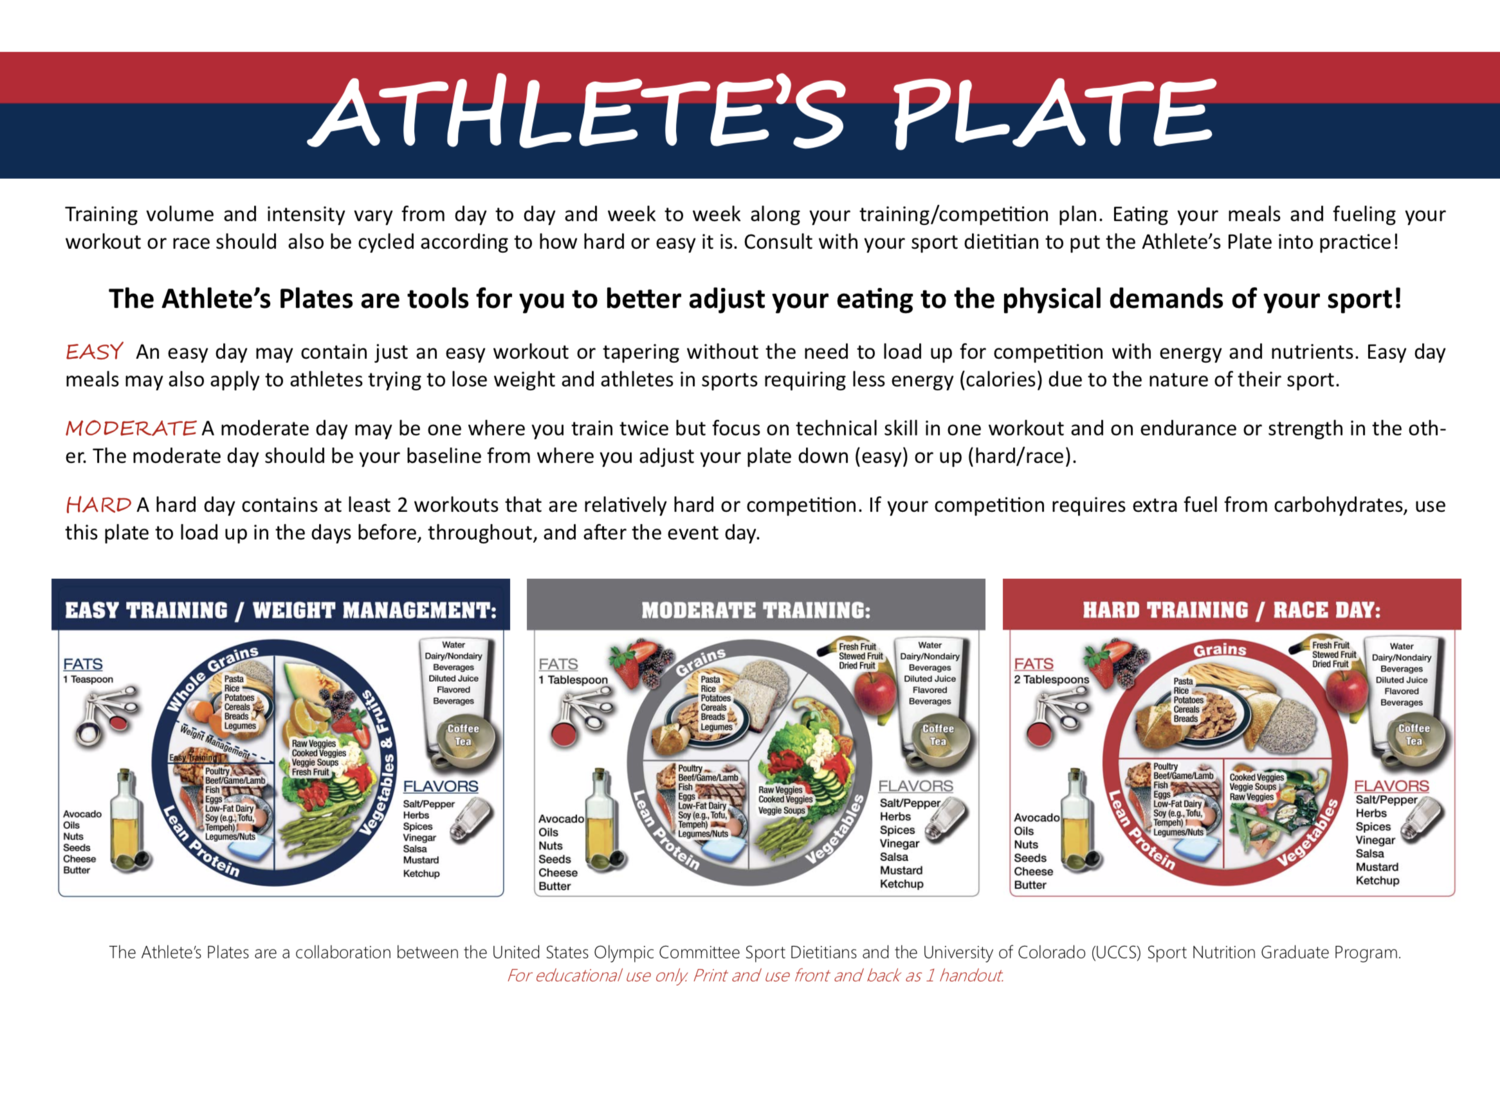 Image of the athlete's plate guidelines describing the portions of each food group should be on an athlete's plate depending on their training load. These recommendations can support intuitive eating for athletes.